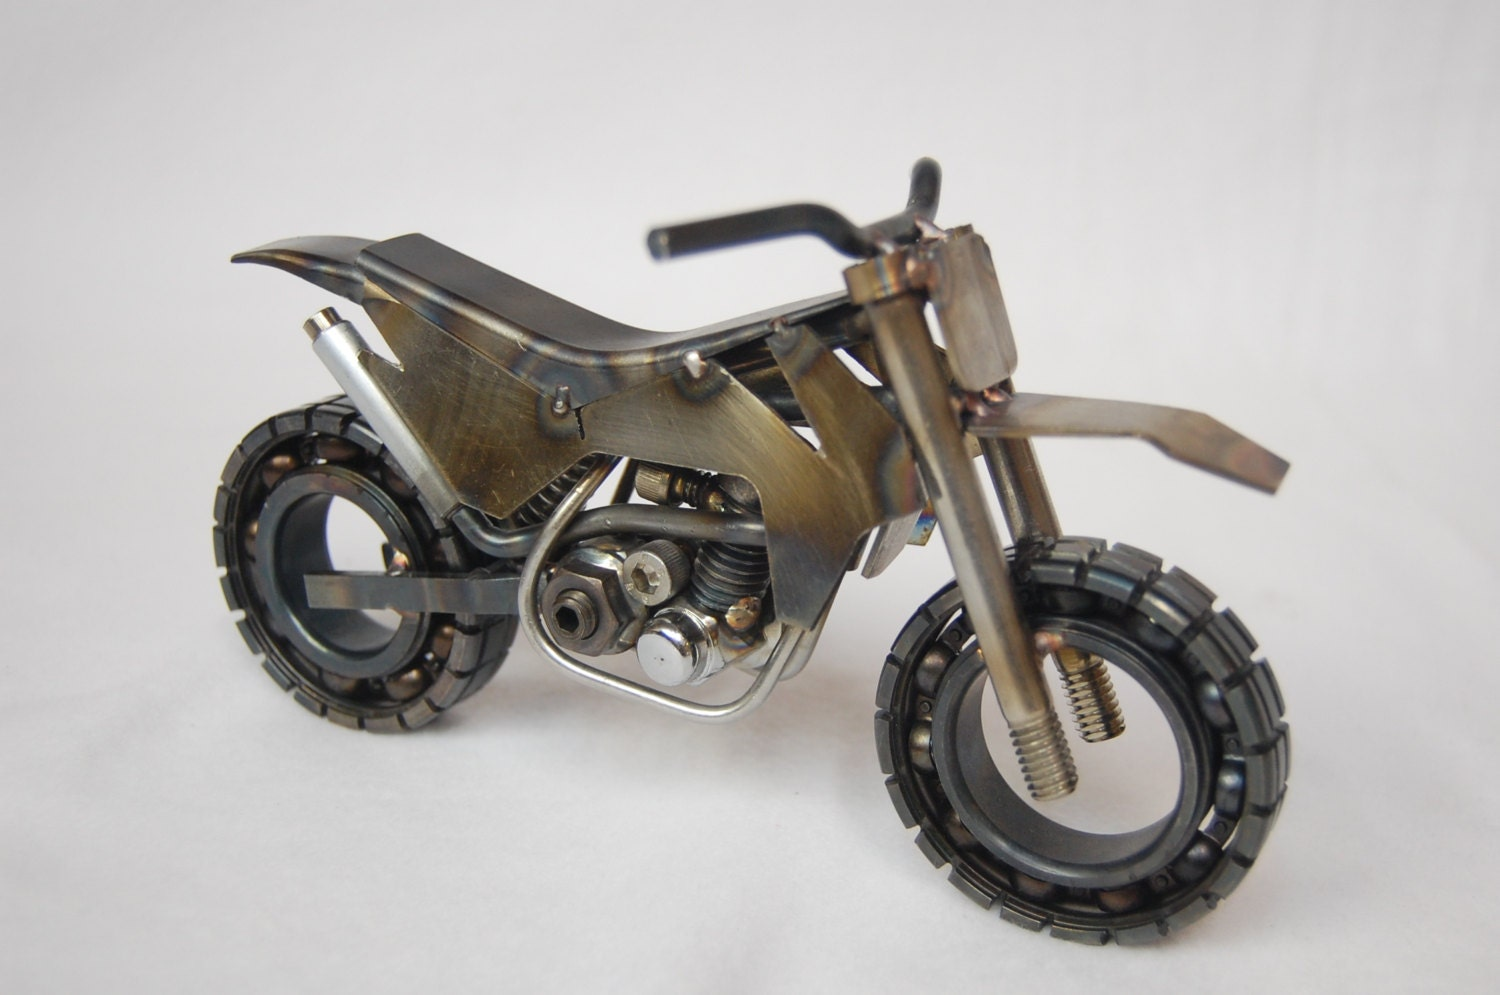 Ktm motorcycle metal art dirt bike for What is dirt made out of